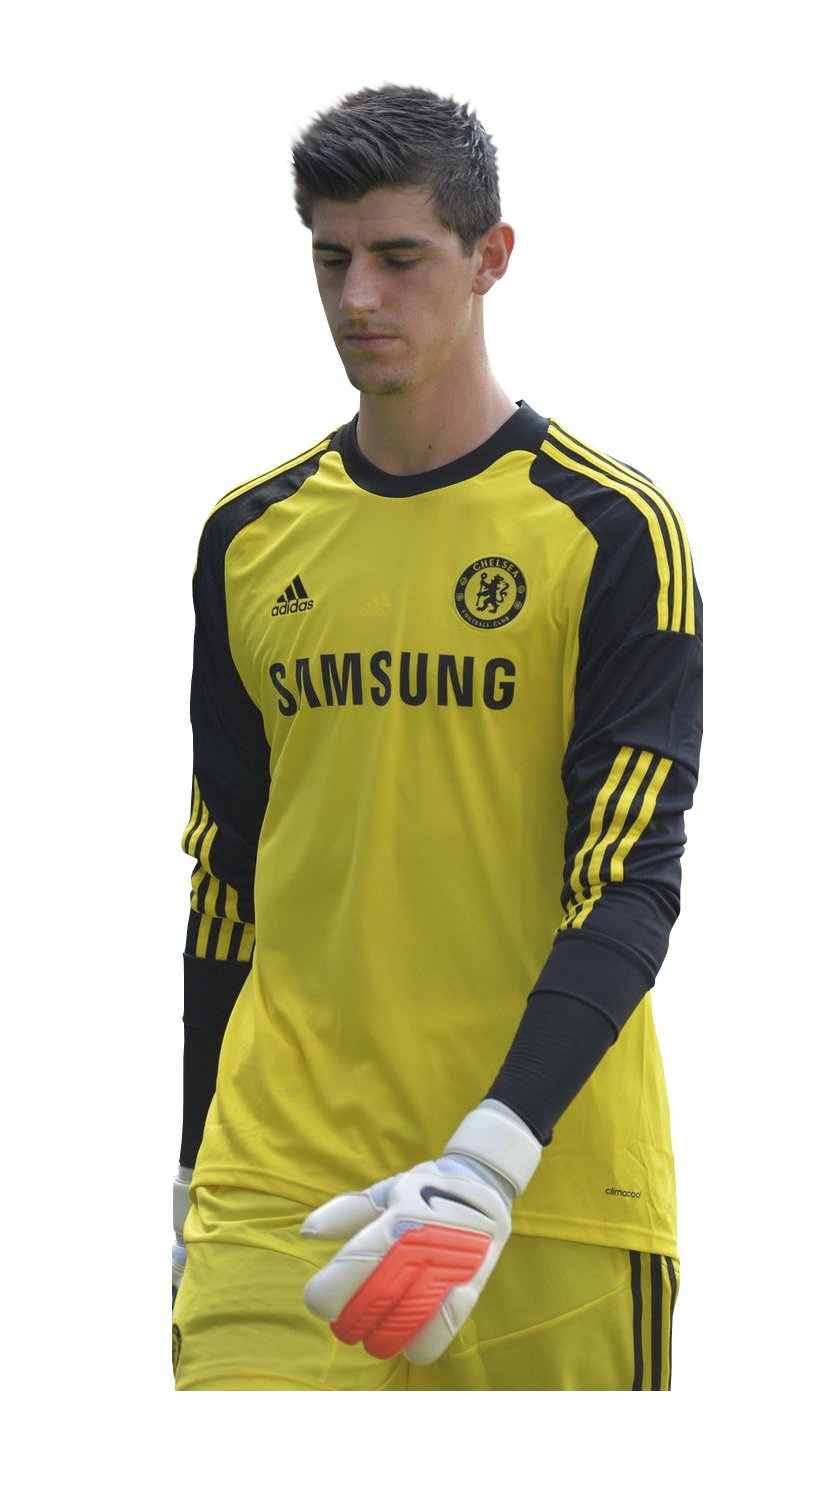 Free Hd Chelsea Fc Wallpaper Render De Thibaut Courtois 2014 2015